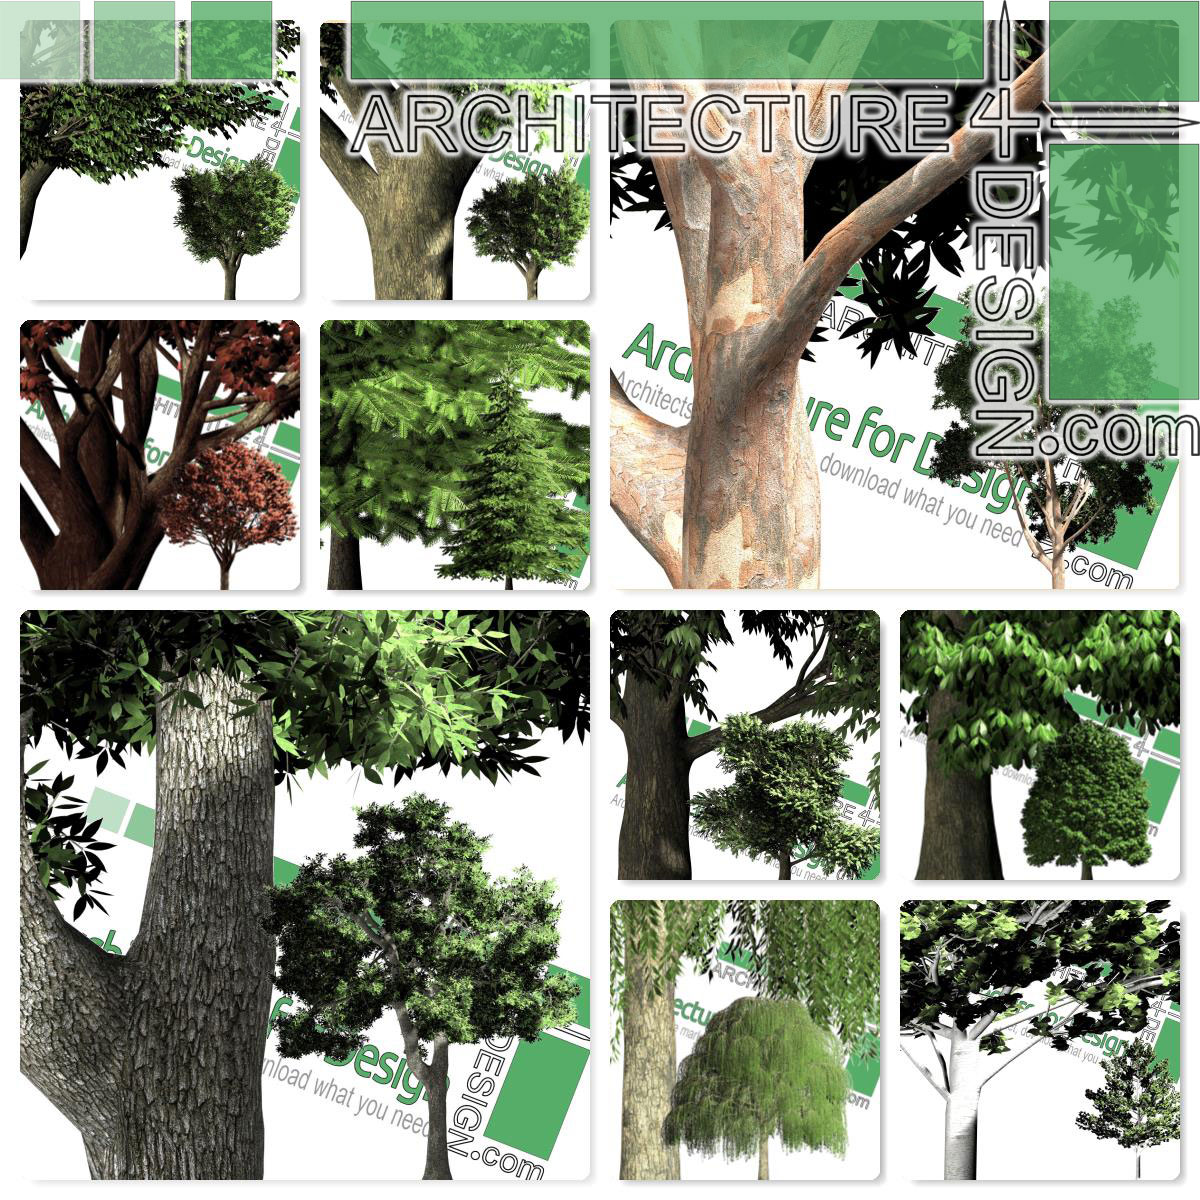 hogh-resolution cut-out trees